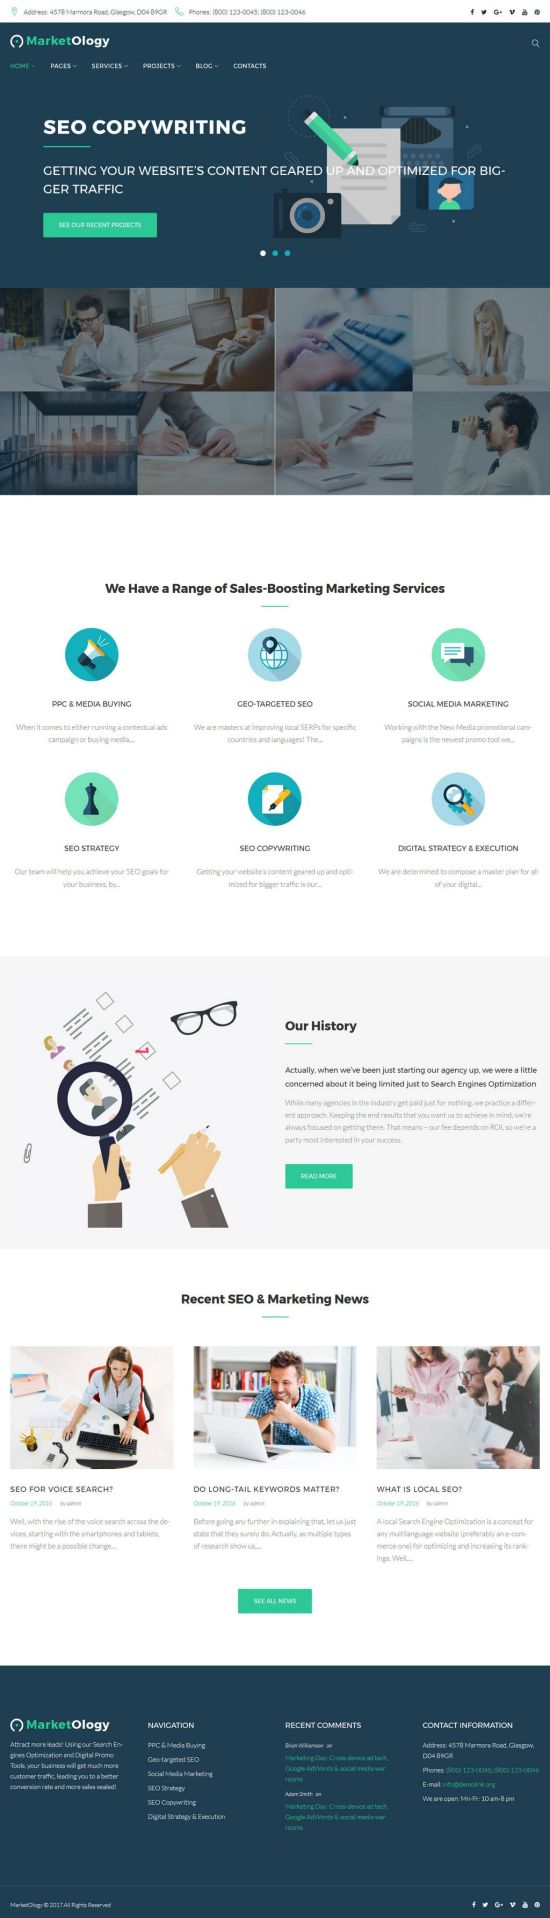 marketology templatemonster–wordpress theme 01 - MarketOlogy WordPress Theme